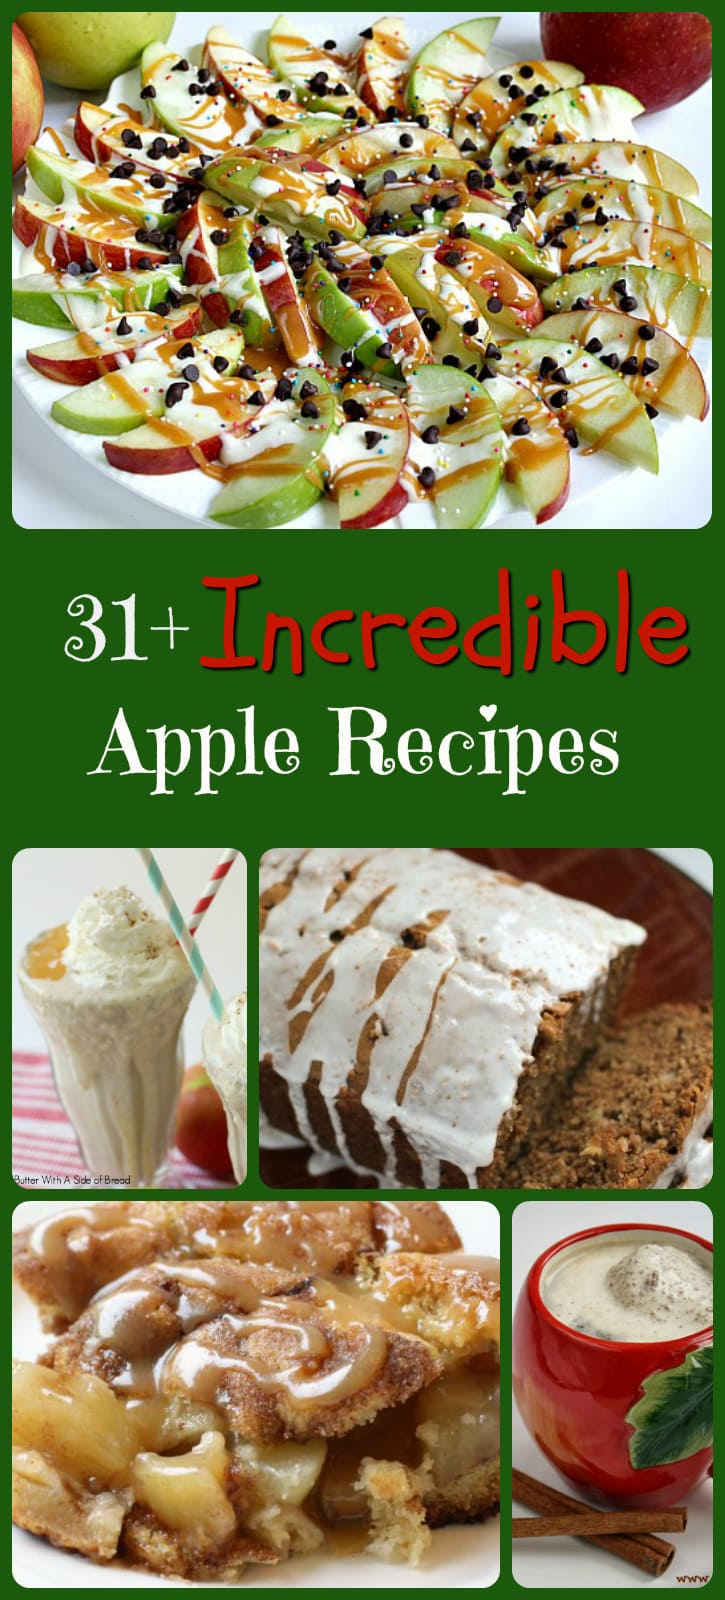 Incredible Apple Recipes - Butter With A Side of Bread